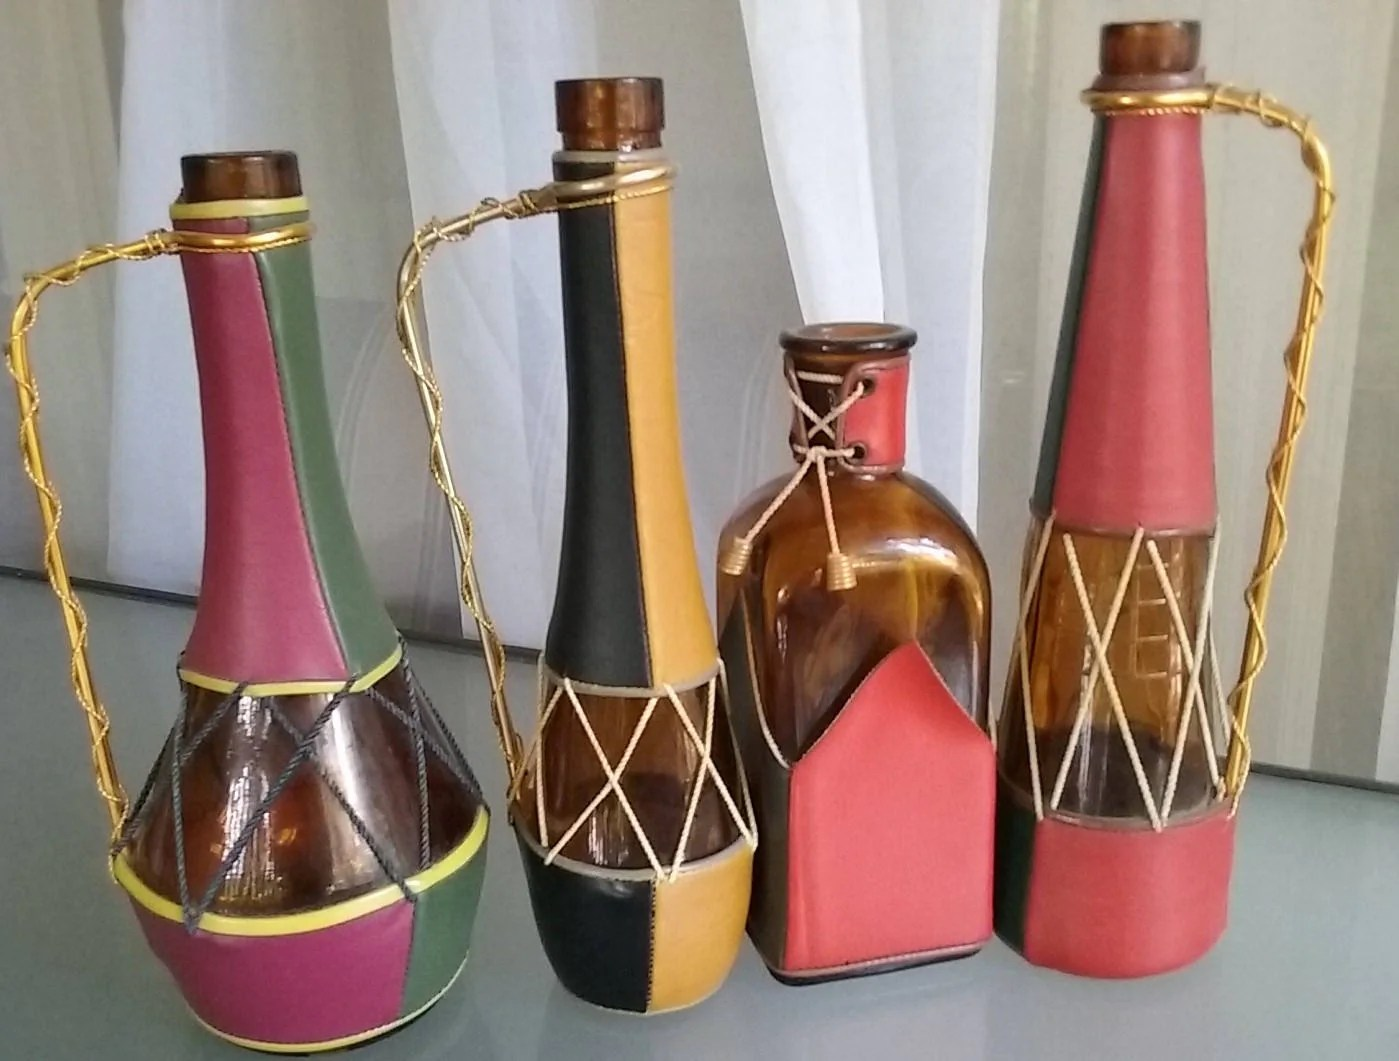 Interesting Bottles Leather Covered Decanters Set Of Four Bottles Vintage Bottles Decanters Amber Glass Metal Handles Multi Colored Leather Spain